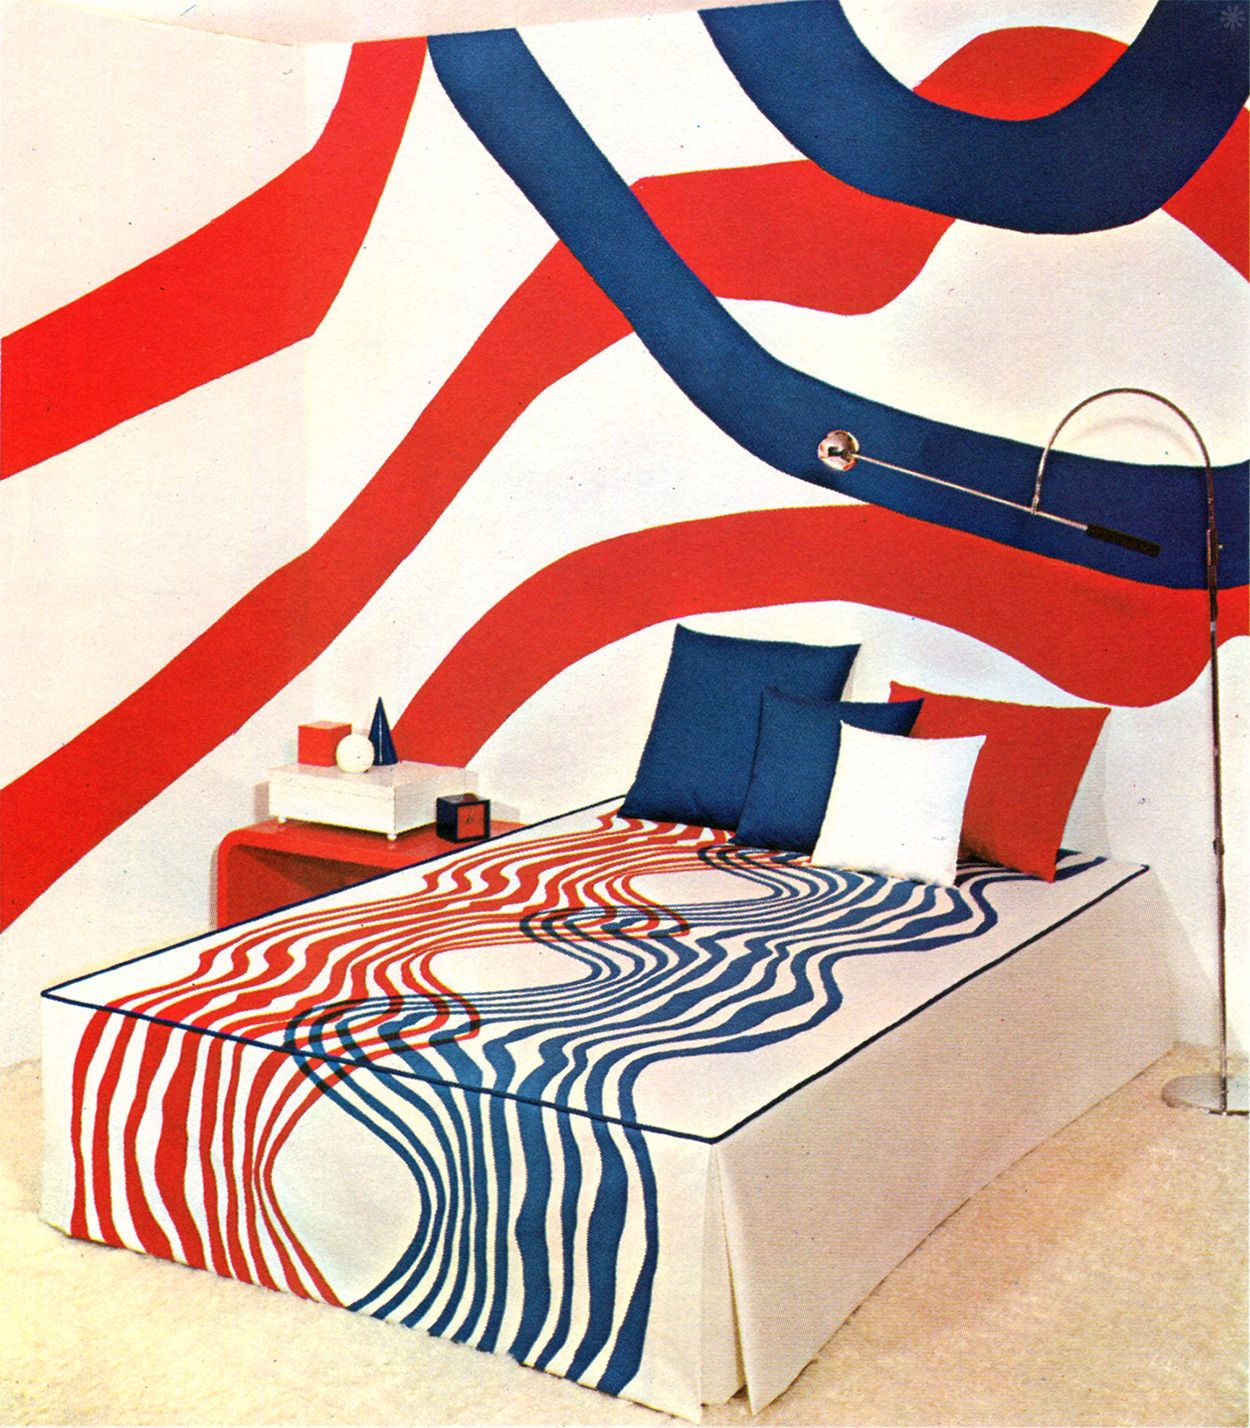 sharp groovy white bedroom inspiration furniture | Groovy Red, White and Blue Bedroom. From McCall's 1969 ...